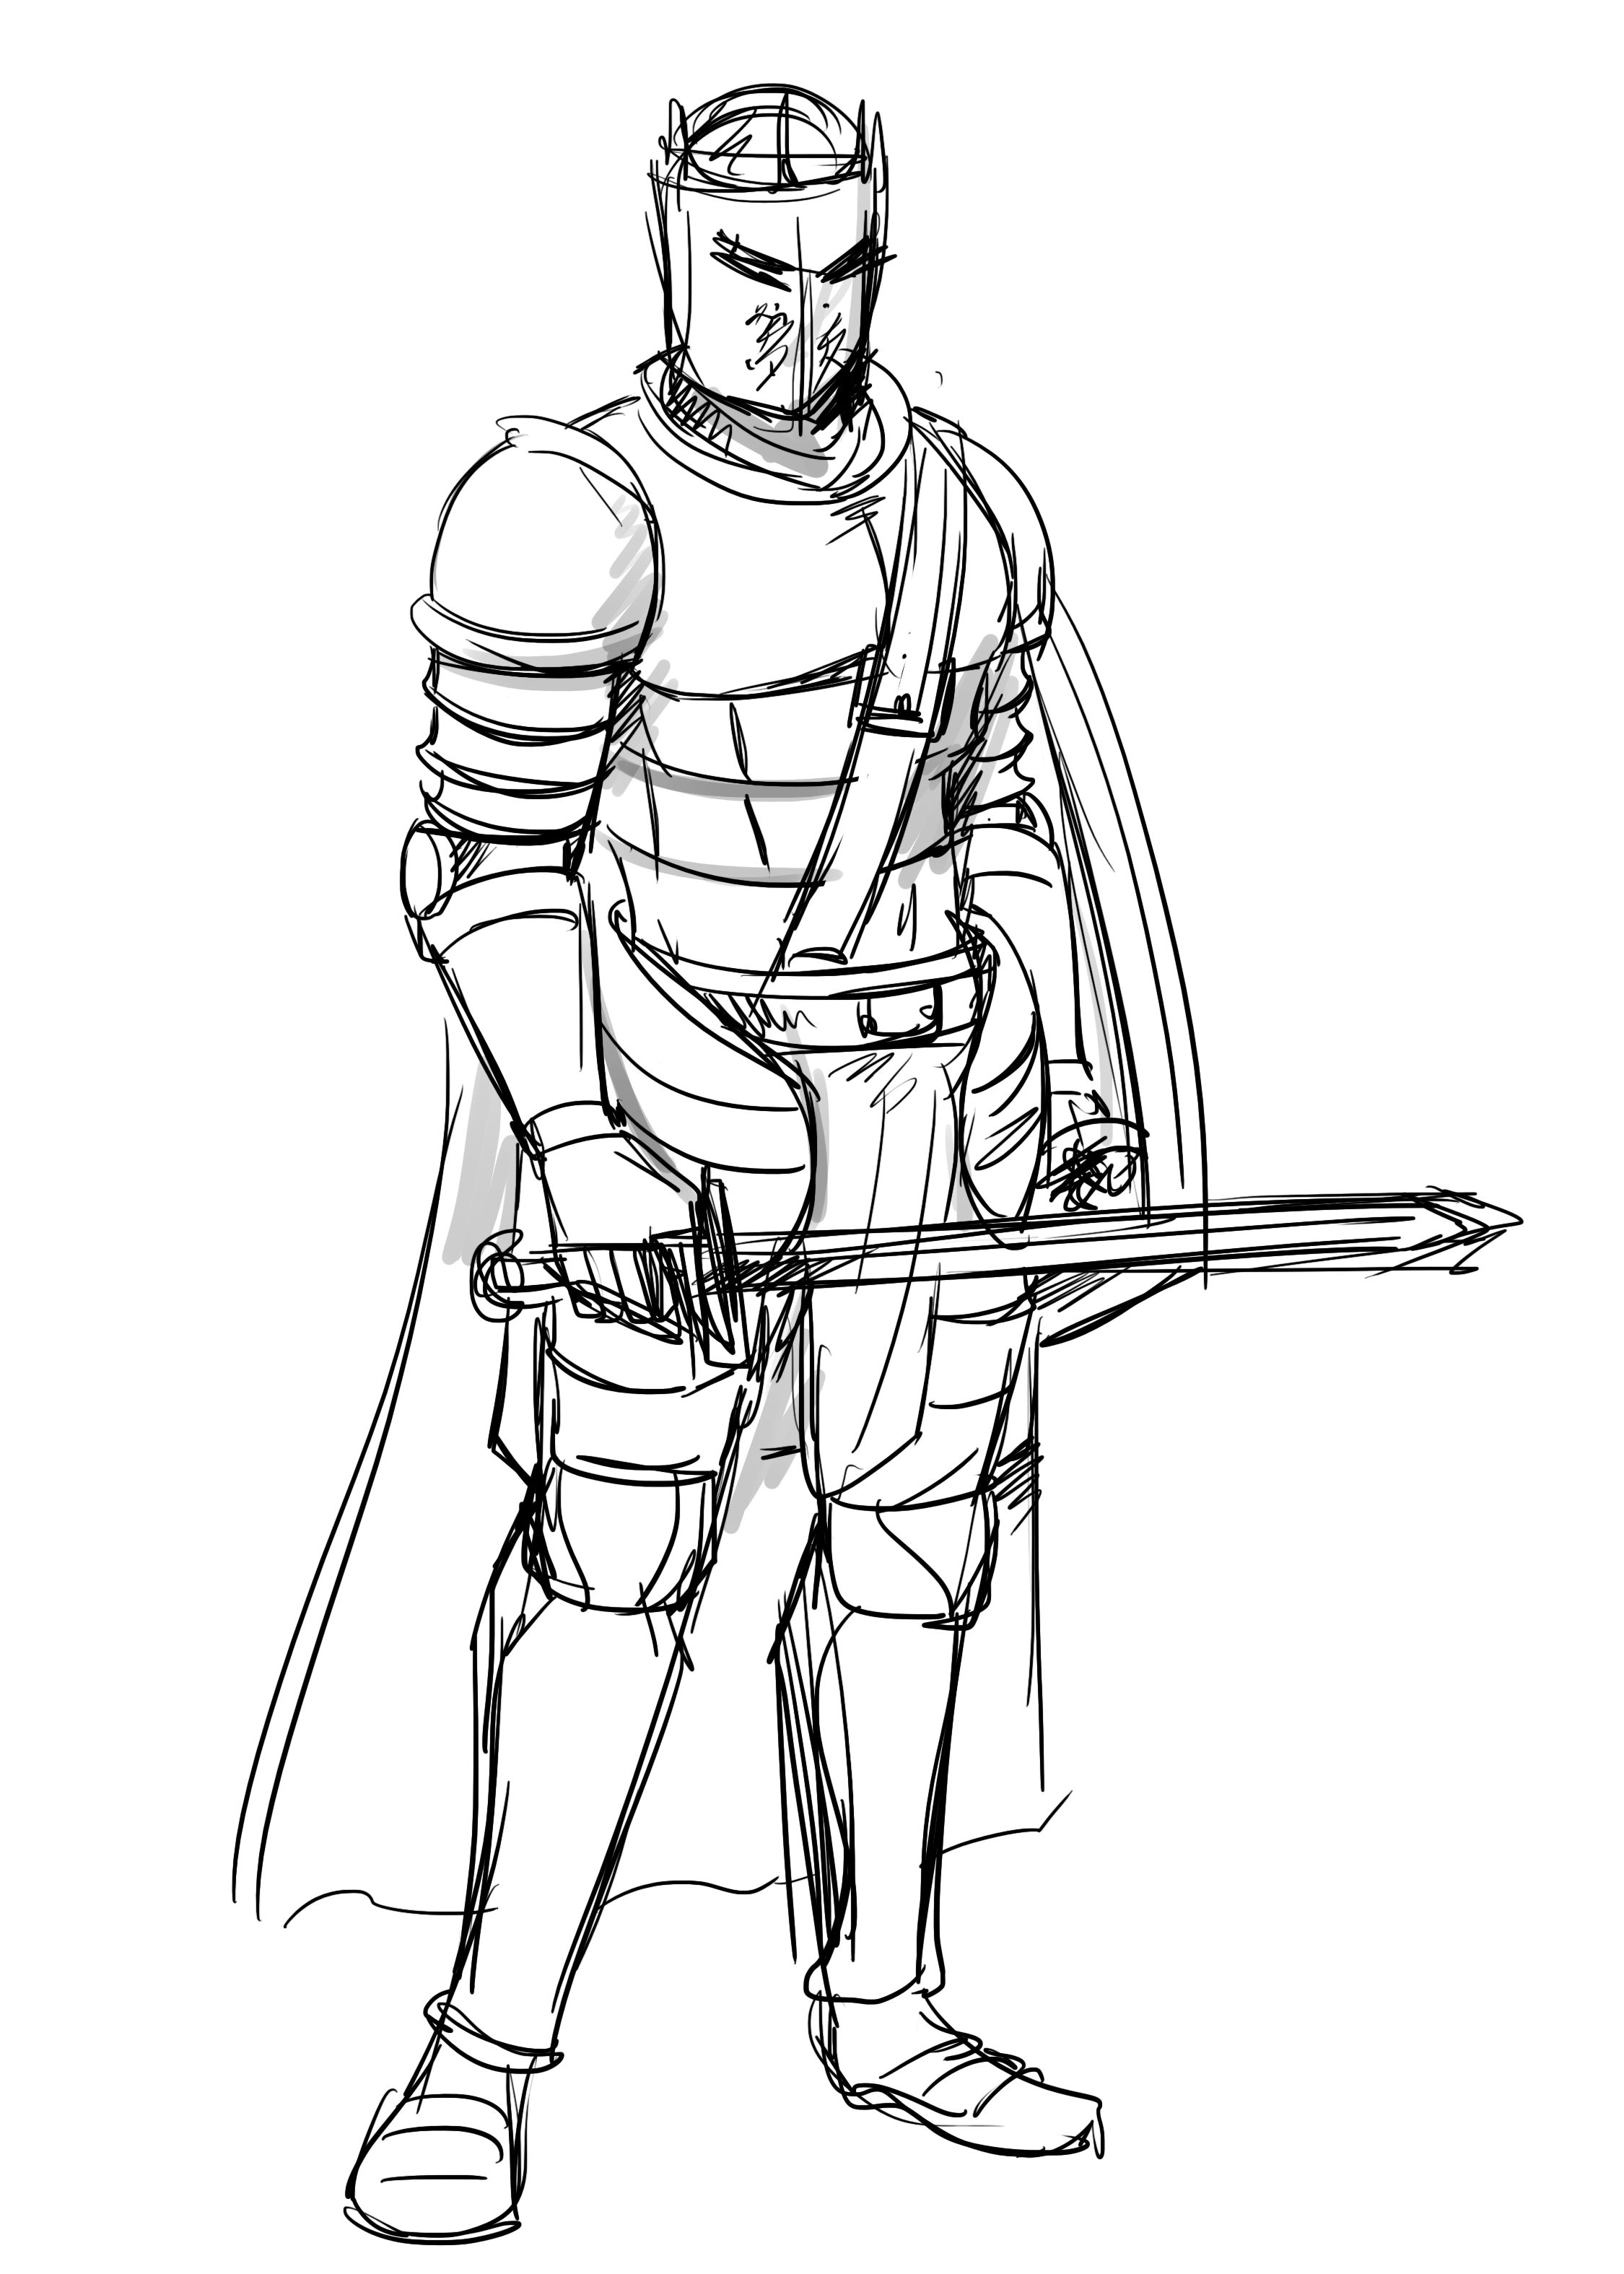 Pin by DracaCard on How to draw a Knight | Sketches, Drawings, Humanoid  sketch